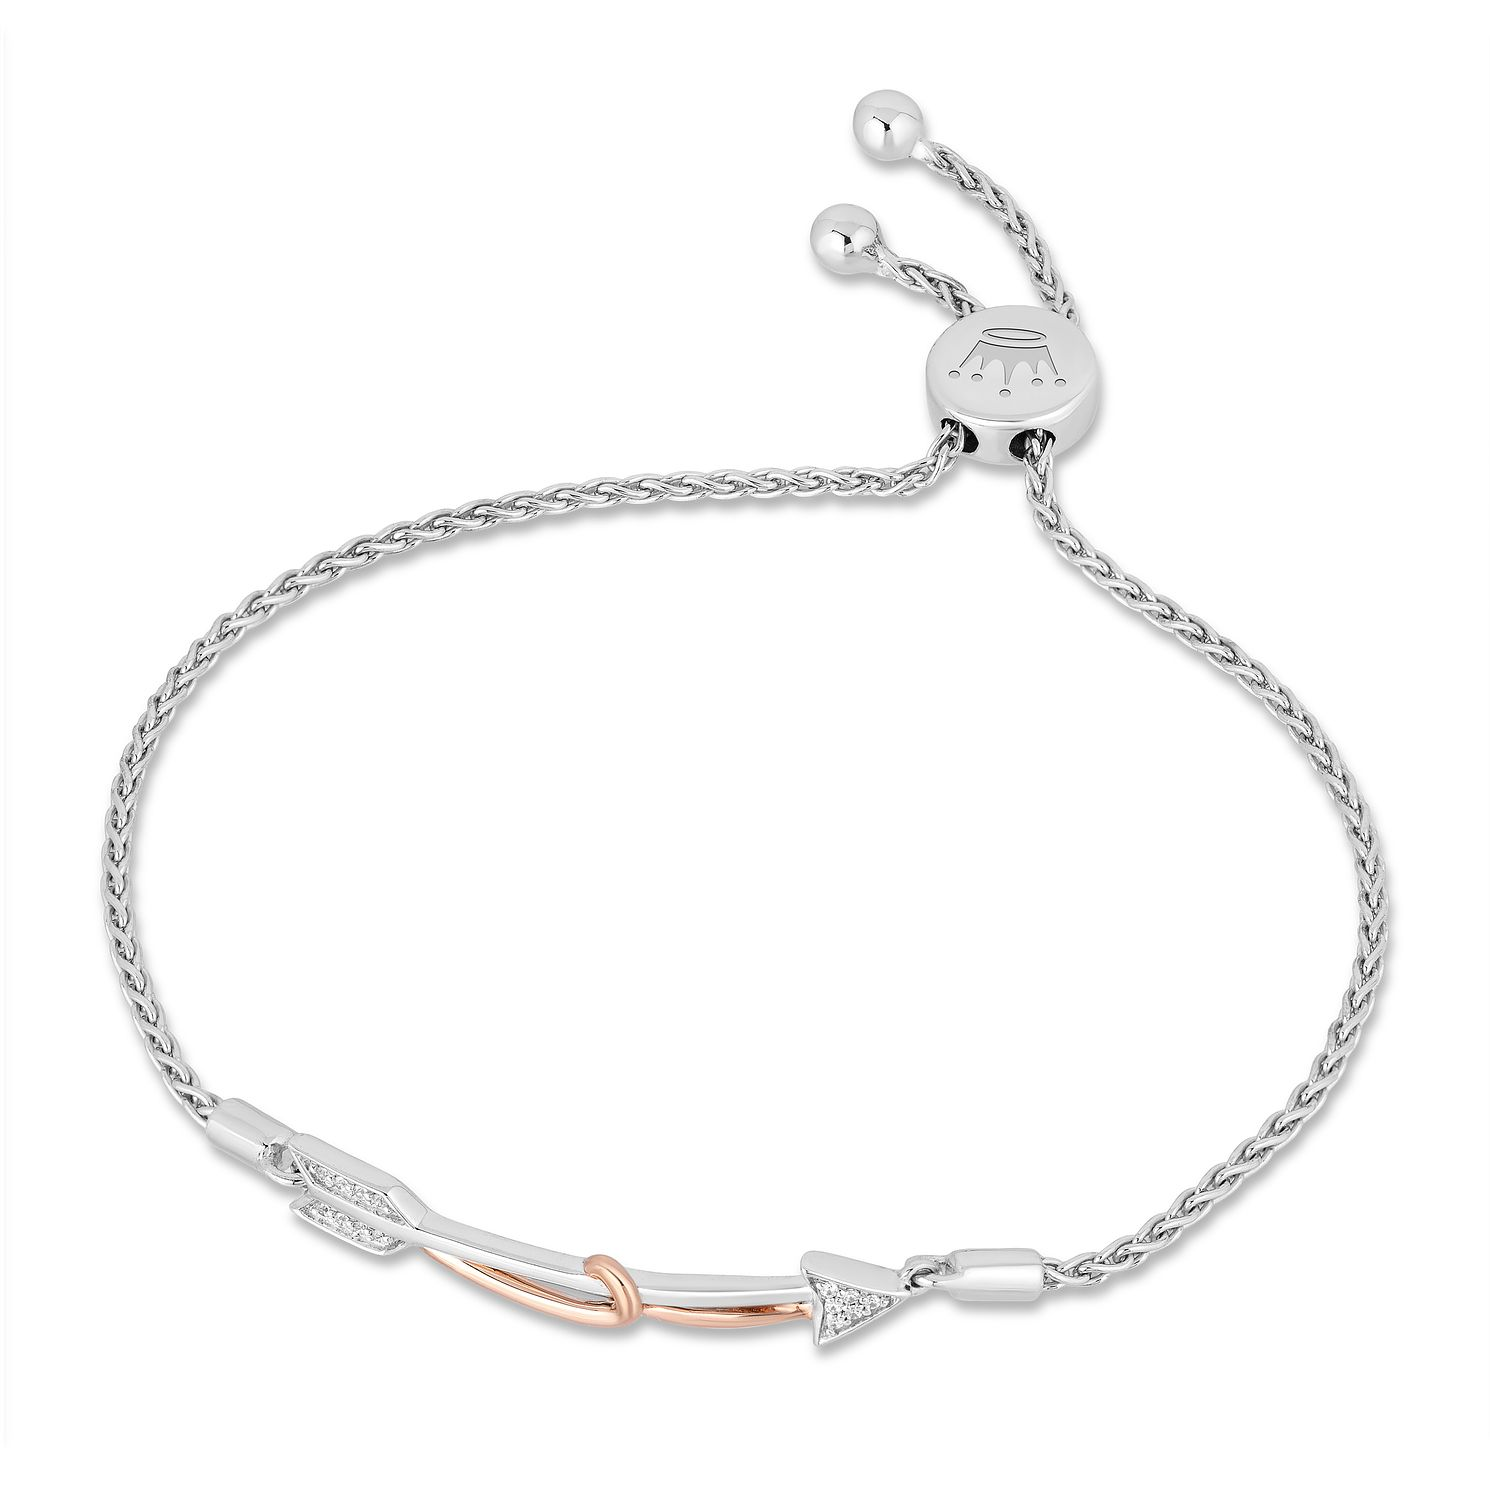 Hallmark Sterling Silver & 9ct Gold Diamond Arrow Bracelet - Product number 3886247